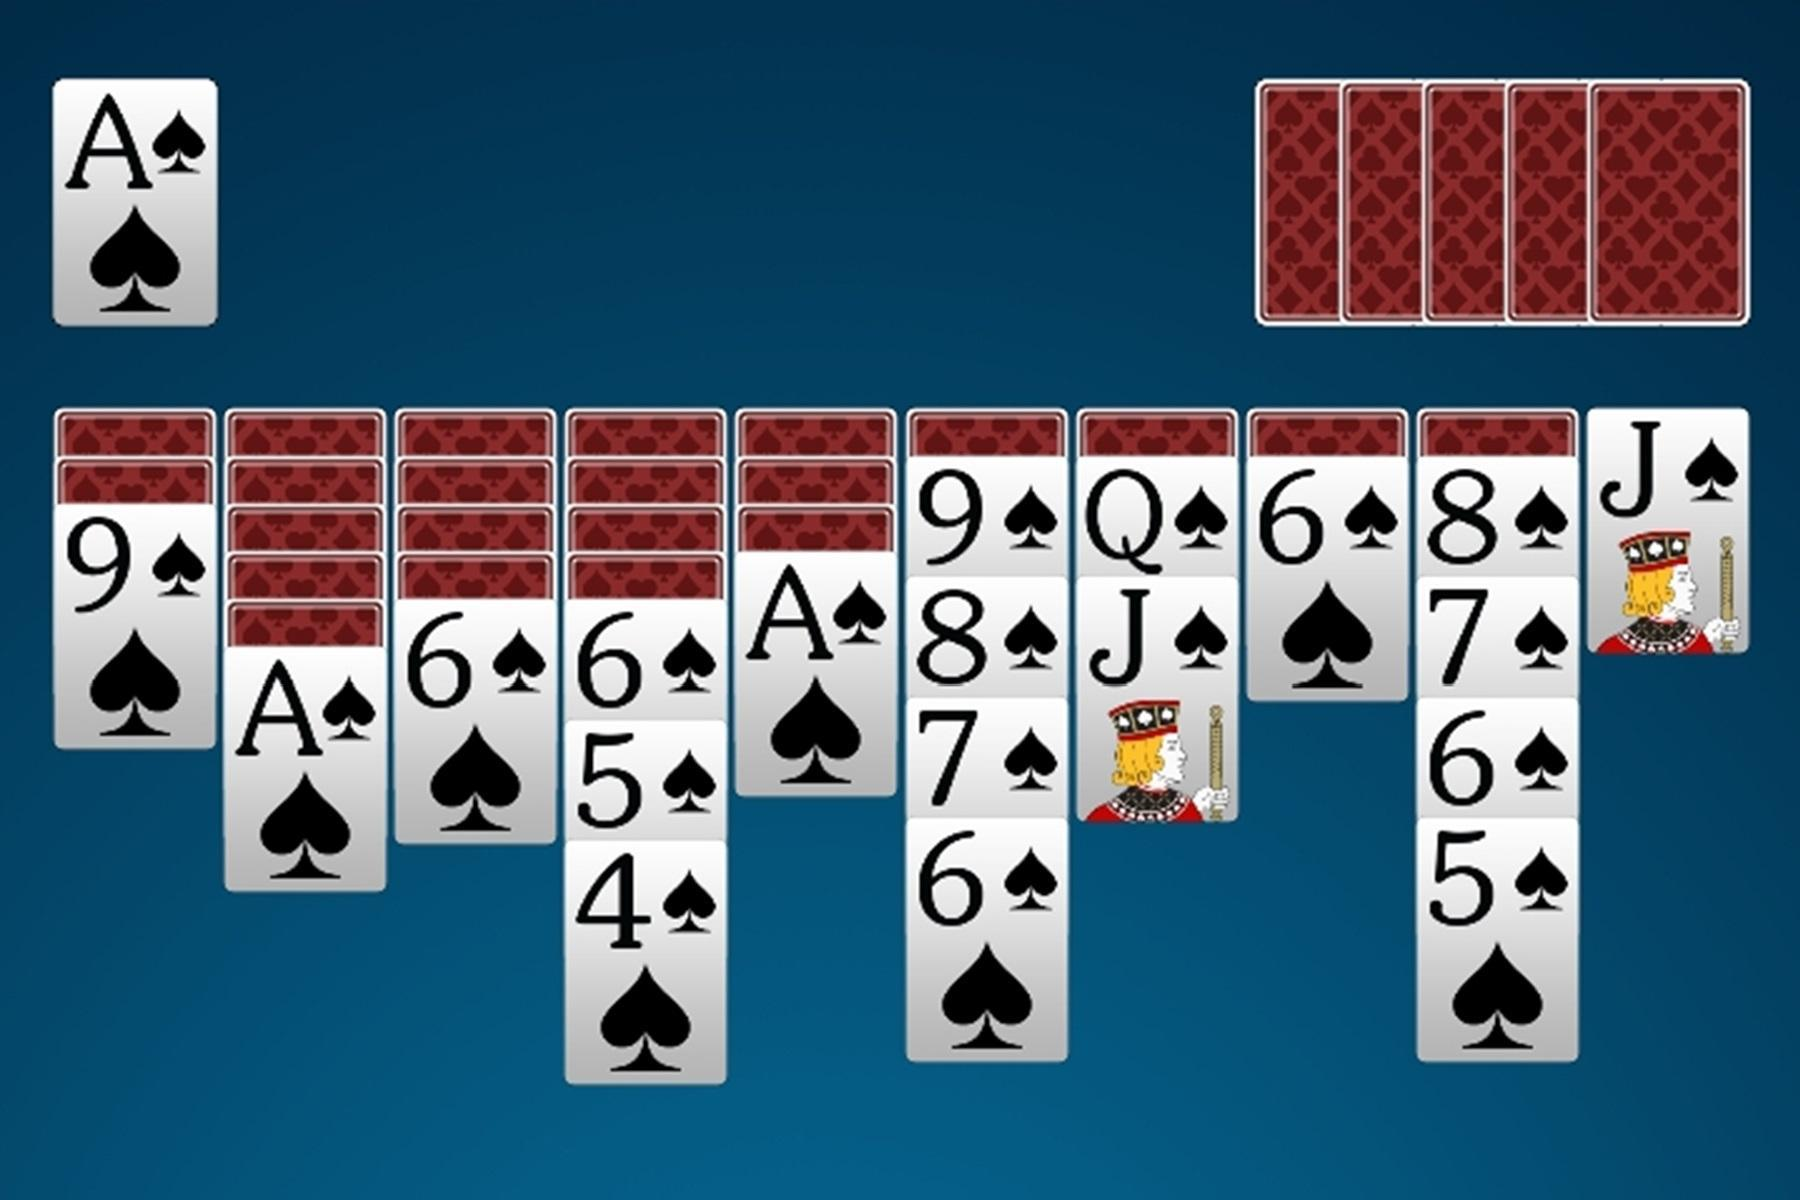 Spider Solitaire 4.4 Screenshot 14